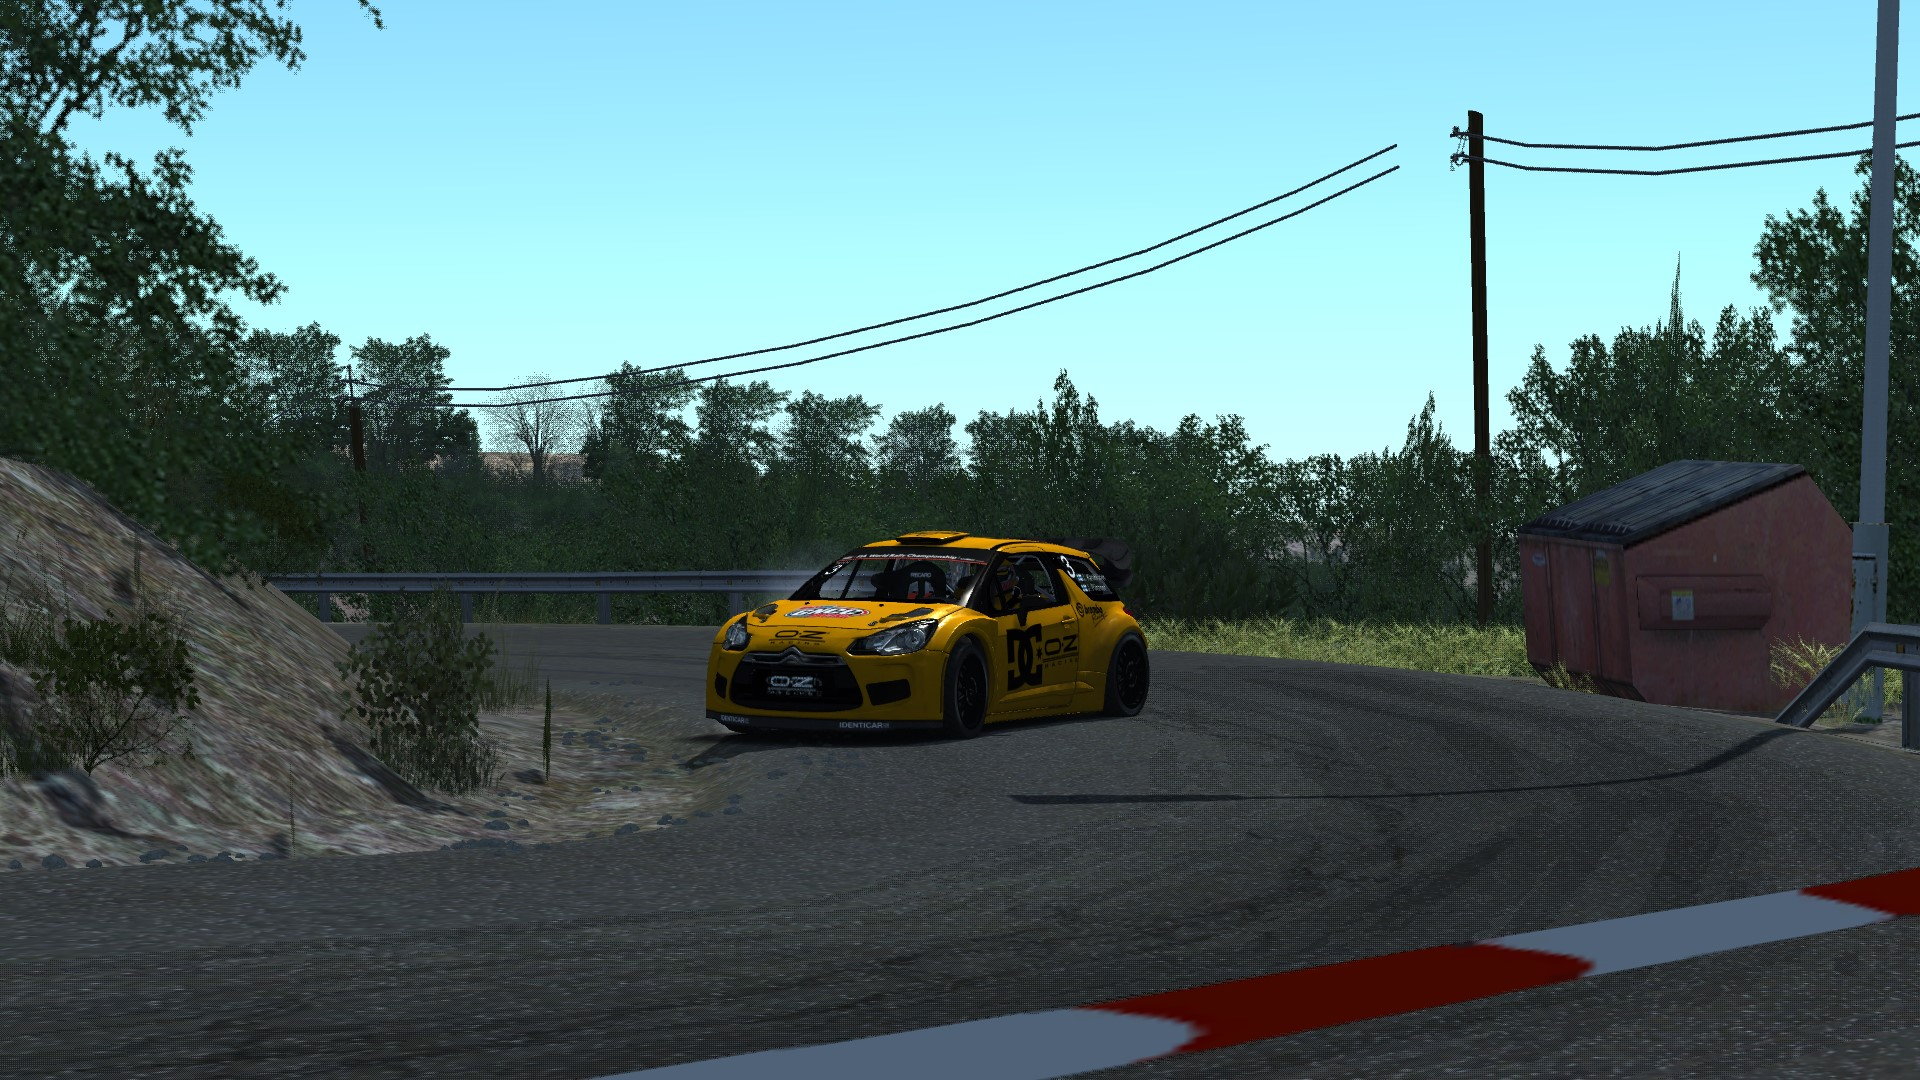 Screenshot_ds3_wrc_2015_hillclimb_moya_20-2-116-21-39-45.jpg